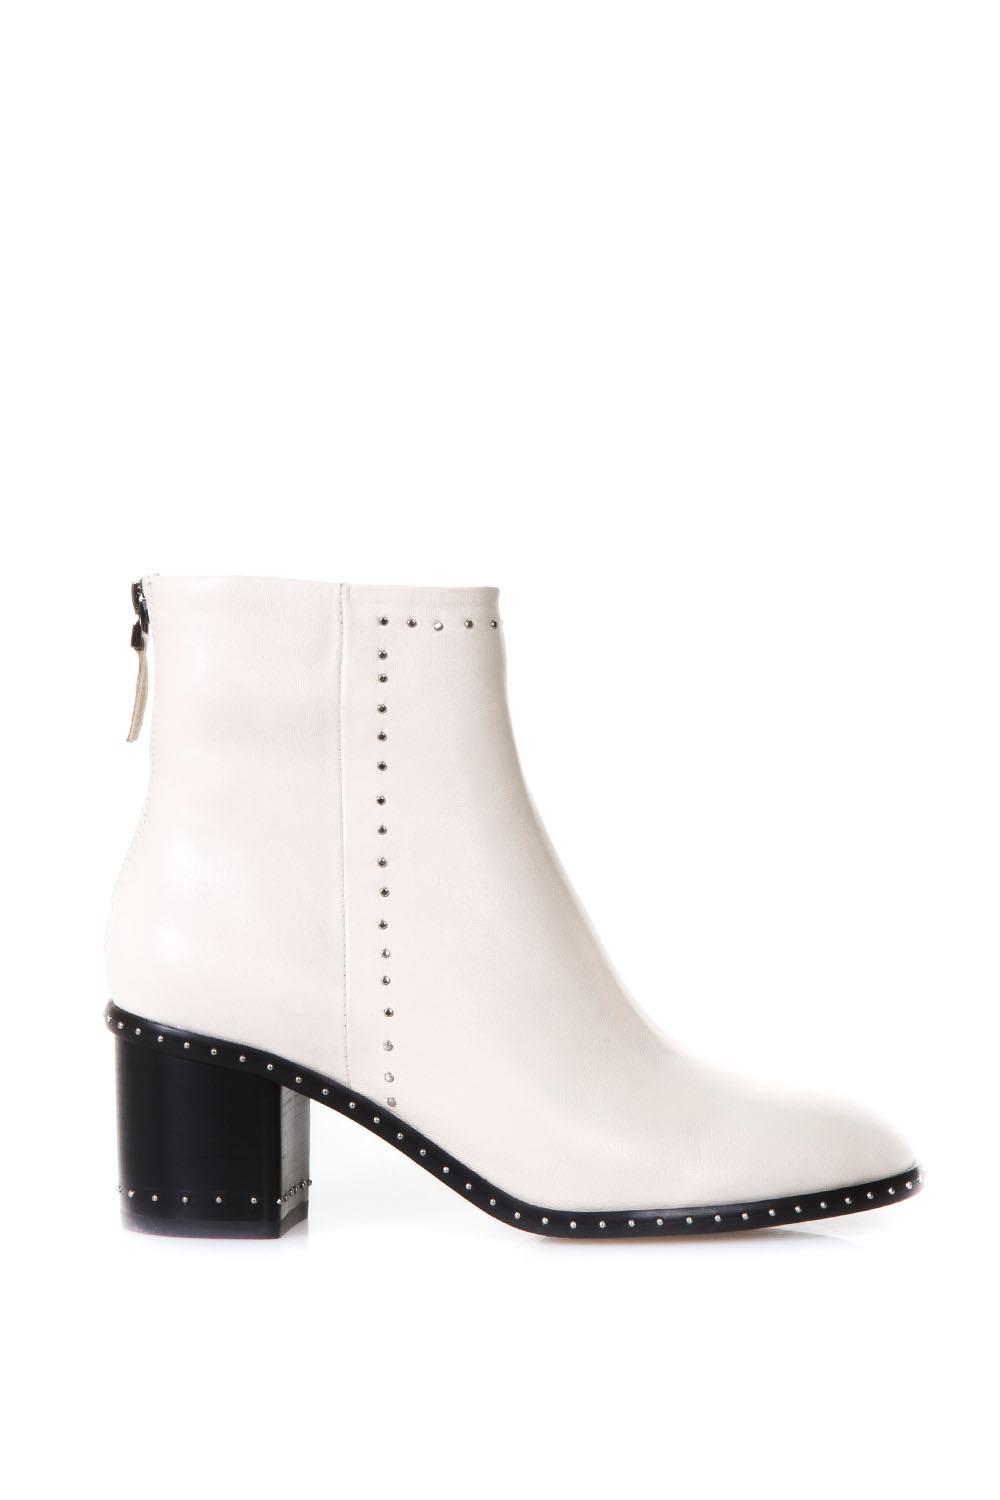 Studded Ivory Leather Ankle Boots